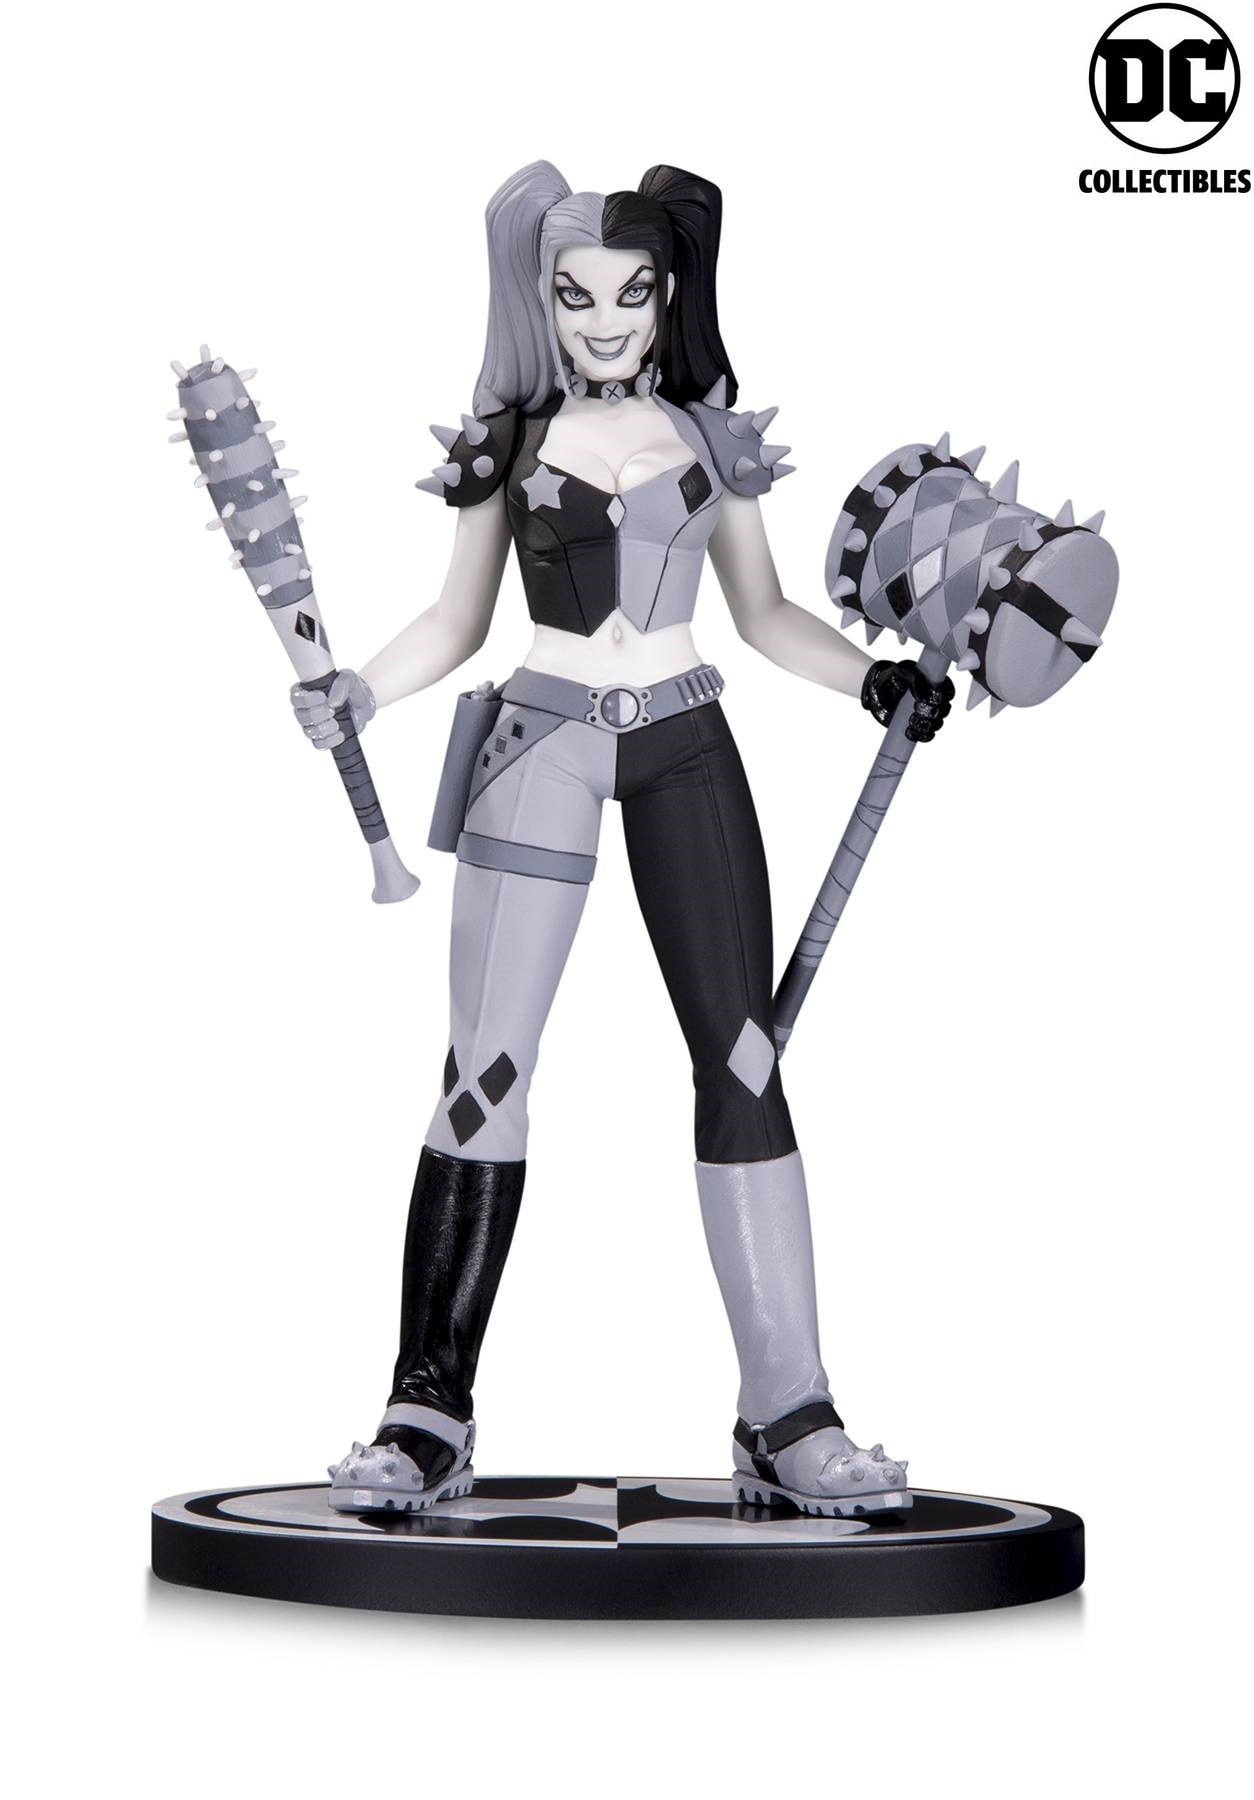 DC Comics Batman Black & White Amanda Conner Harley Quinn Statue